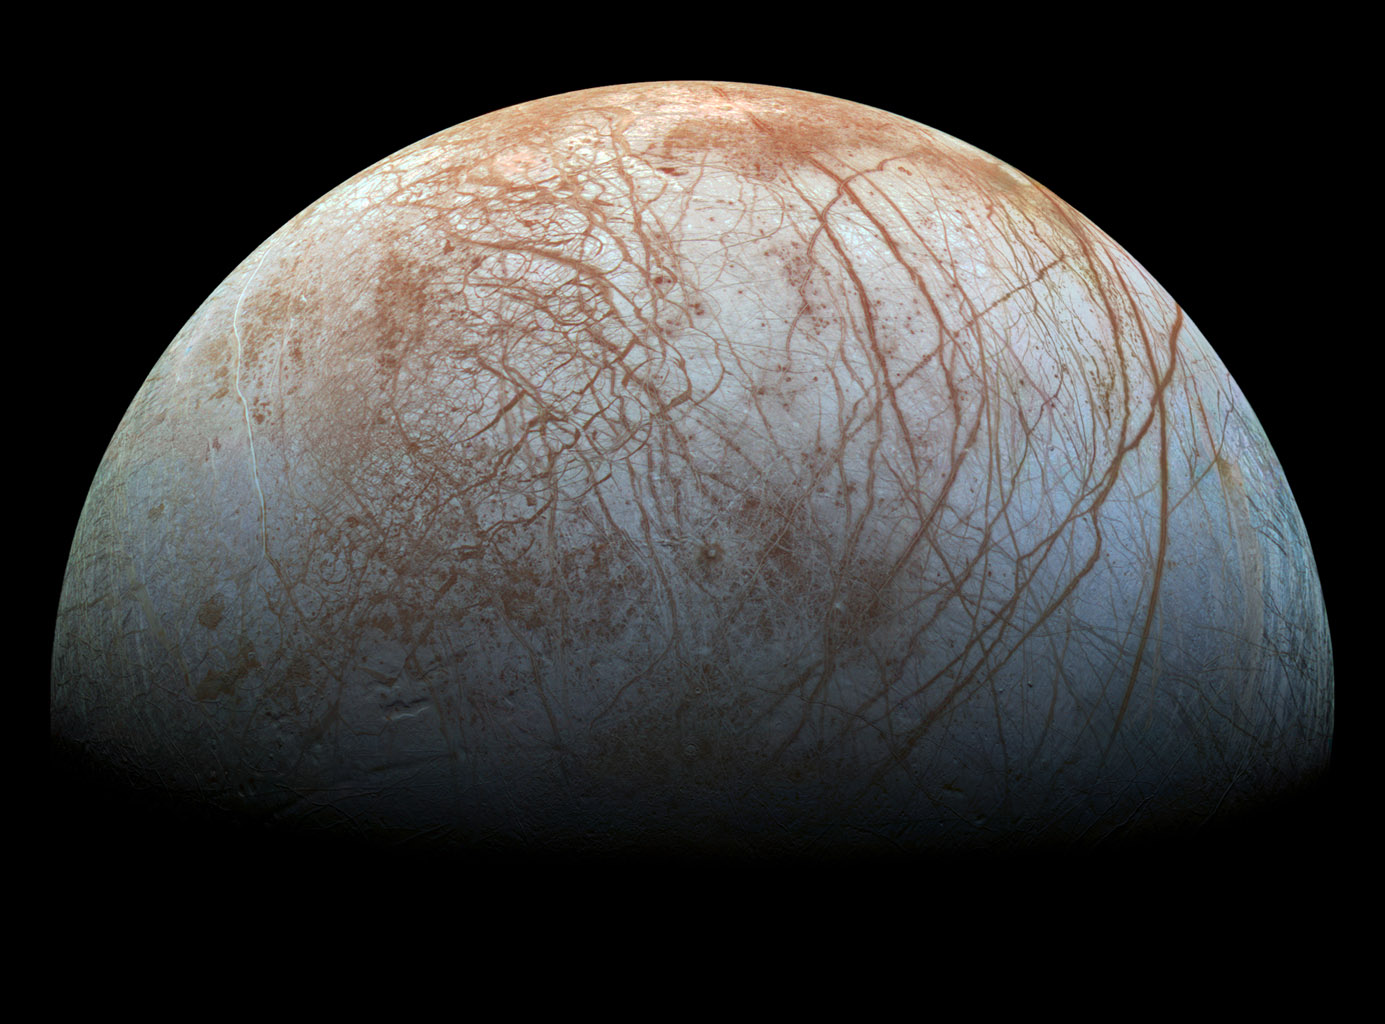 NASA's Europa Mission May Land on Ocean-Harboring Moon